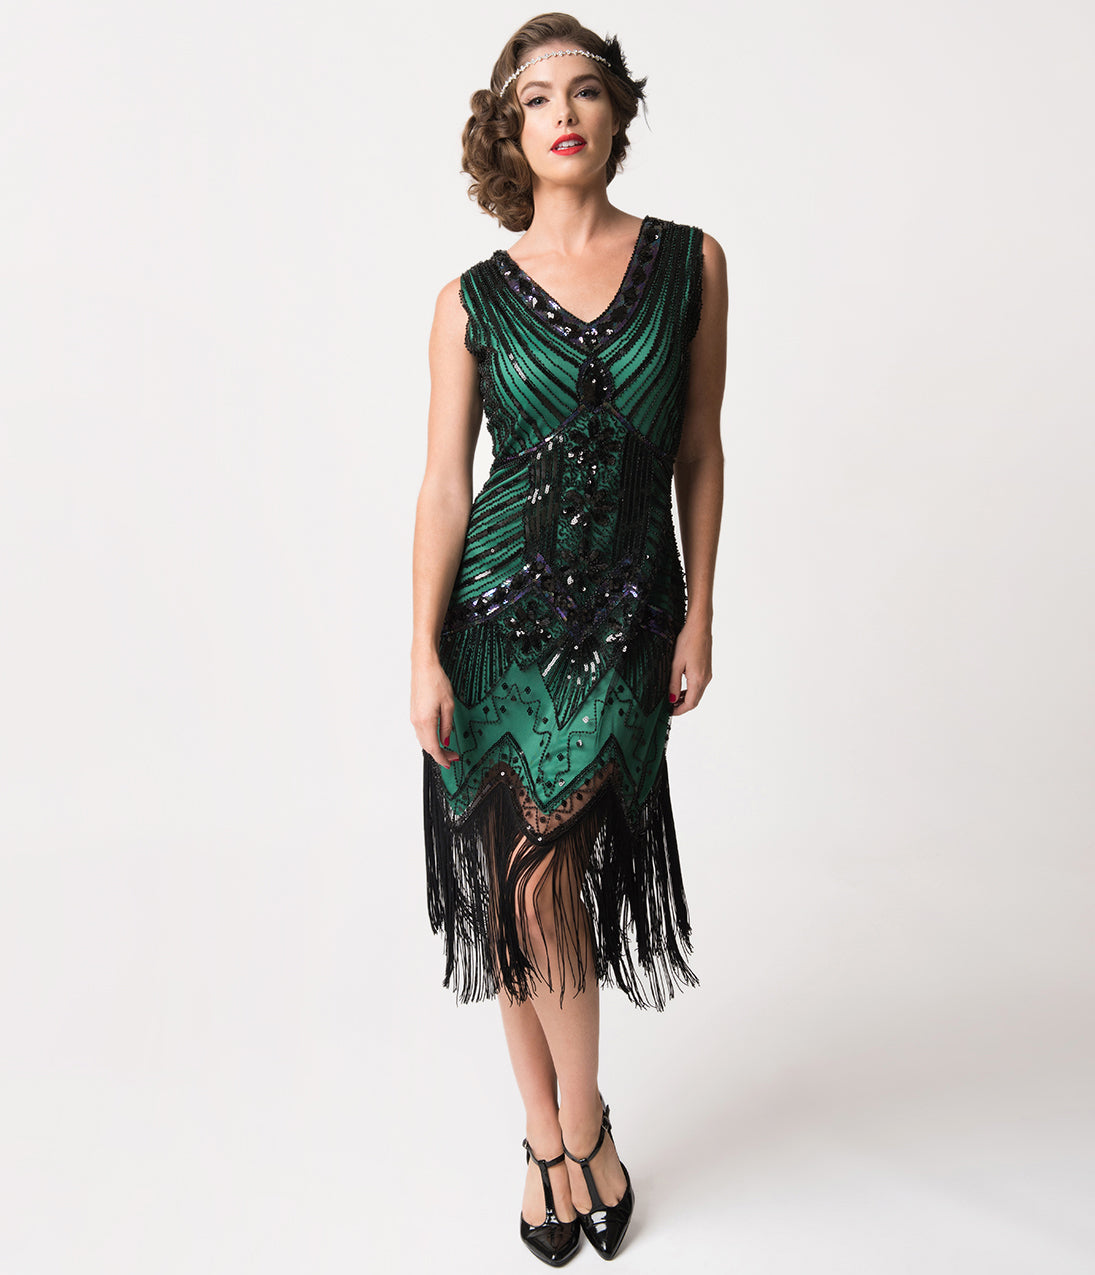 Vintage New Years Eve Dresses – Vintage Inspired Styles Unique Vintage 1920S Deco Green  Black Sequin Veronique Fringe Flapper Dress $98.00 AT vintagedancer.com